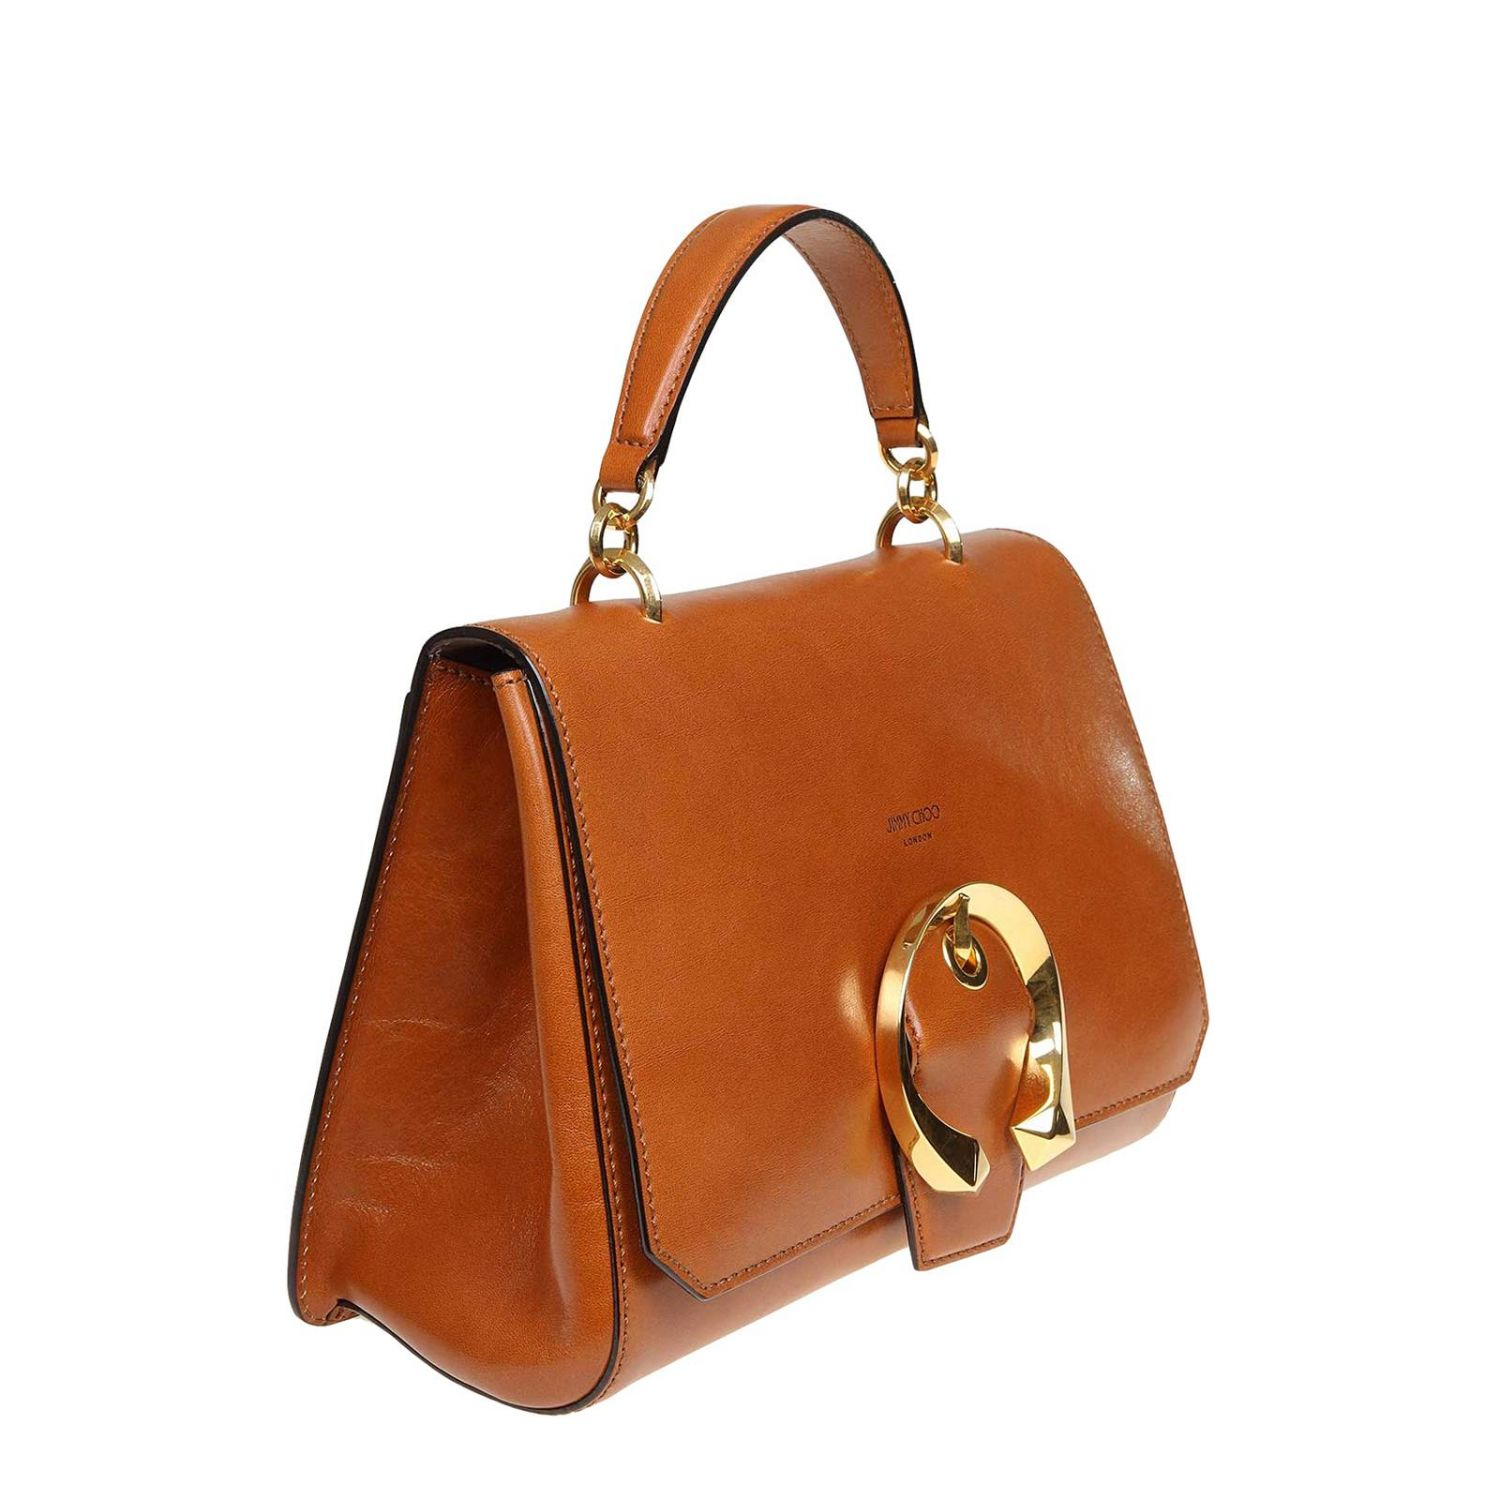 Tote bags Jimmy Choo: Madeline Jimmy Choo handbag in vintage leather with jeweled buckle leather 2